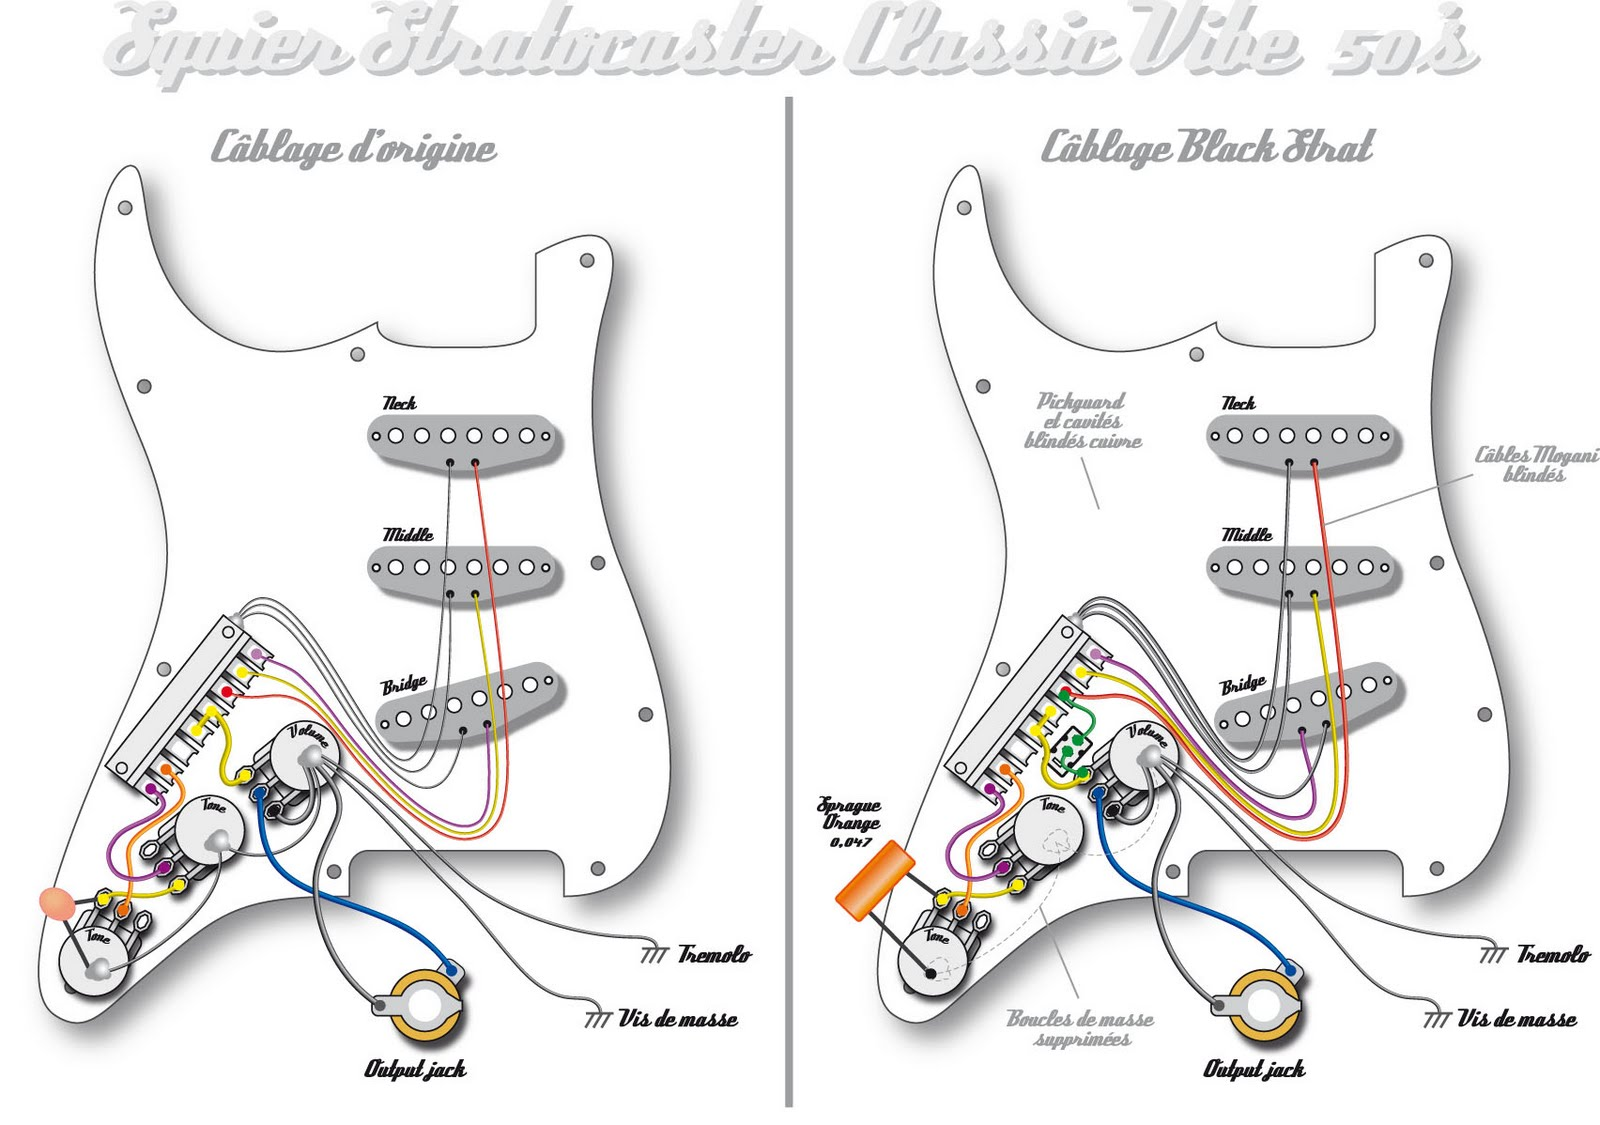 fender stratocaster wiring diagram  fender  free engine